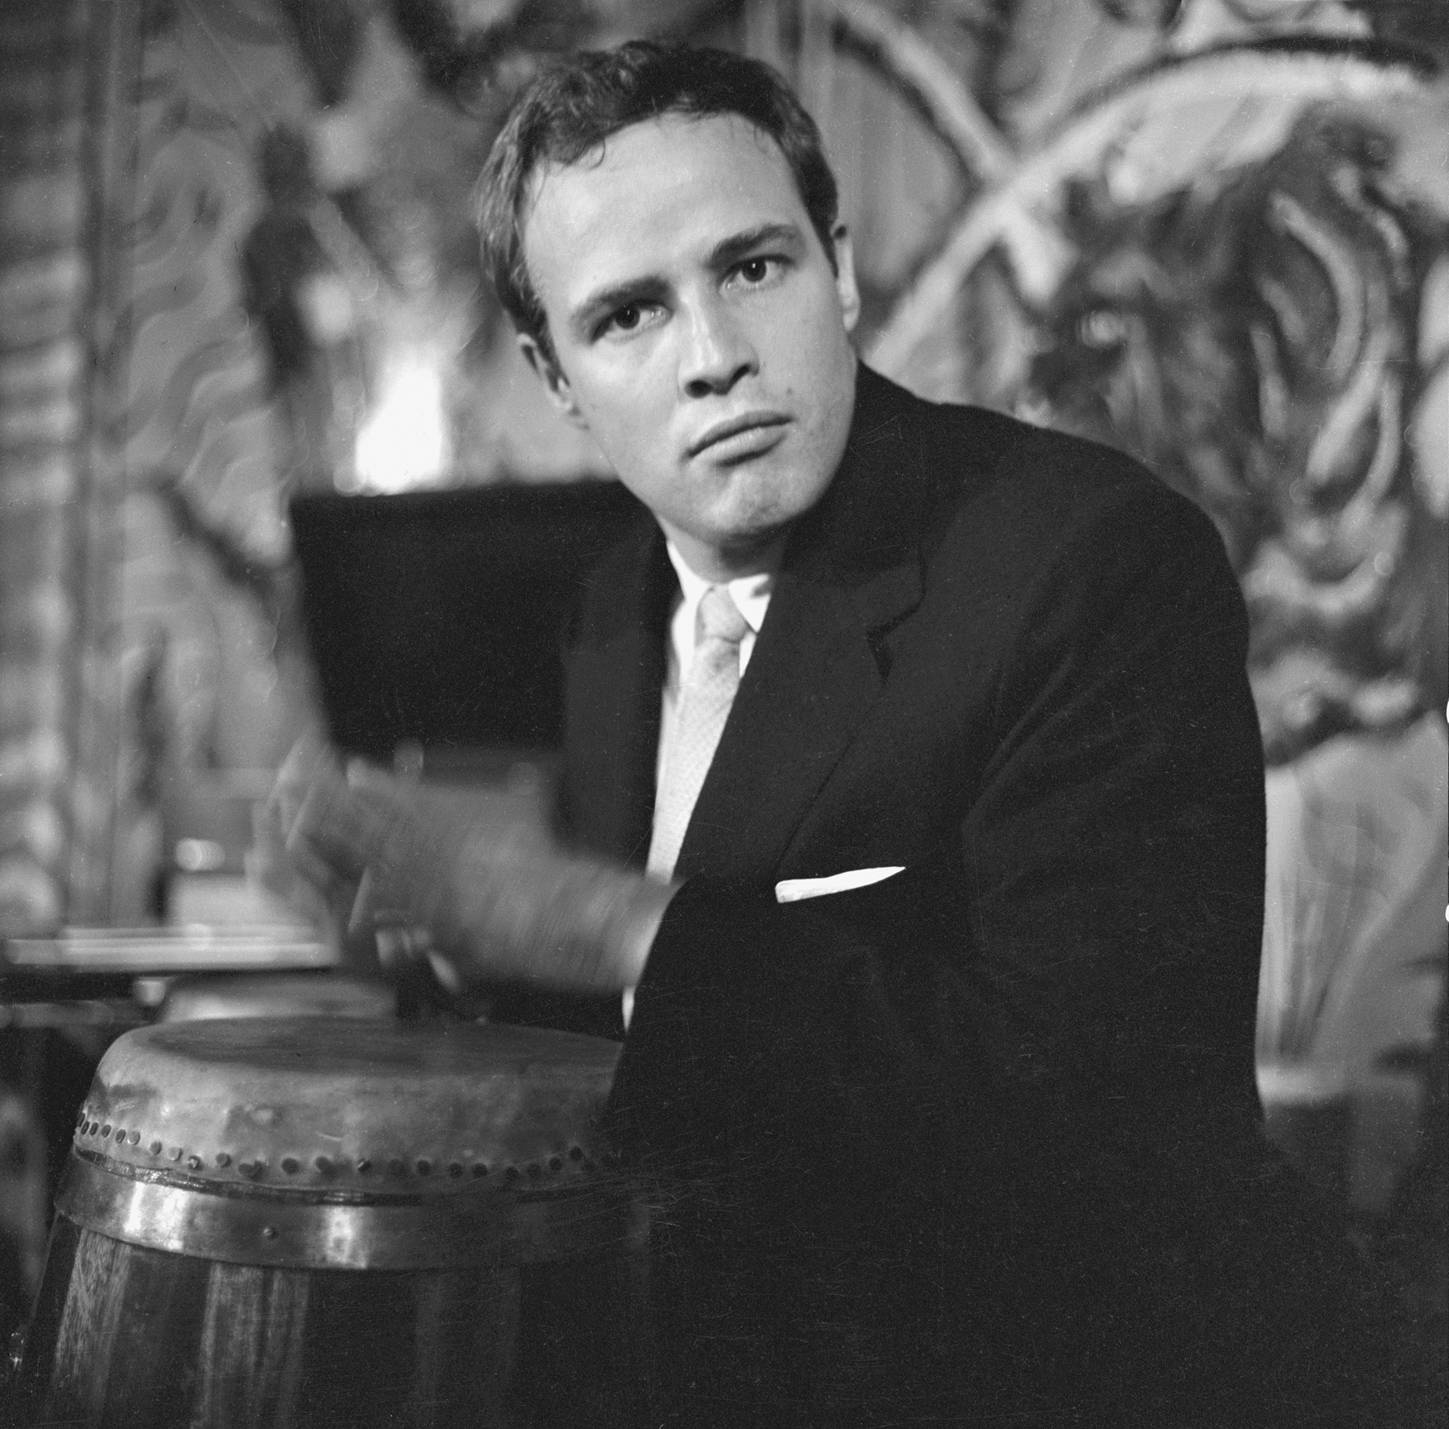 marlon brando Marlon brando jr (april 3, 1924 – july 1, 2004) was an american actor and film director he is credited with bringing realism to film acting, helping to popularize the stanislavski system of acting, studying with stella adler in the 1940s regarded for his cultural influence on 20th century film, brando's academy award-winning performances include that of terry malloy in on the waterfront.